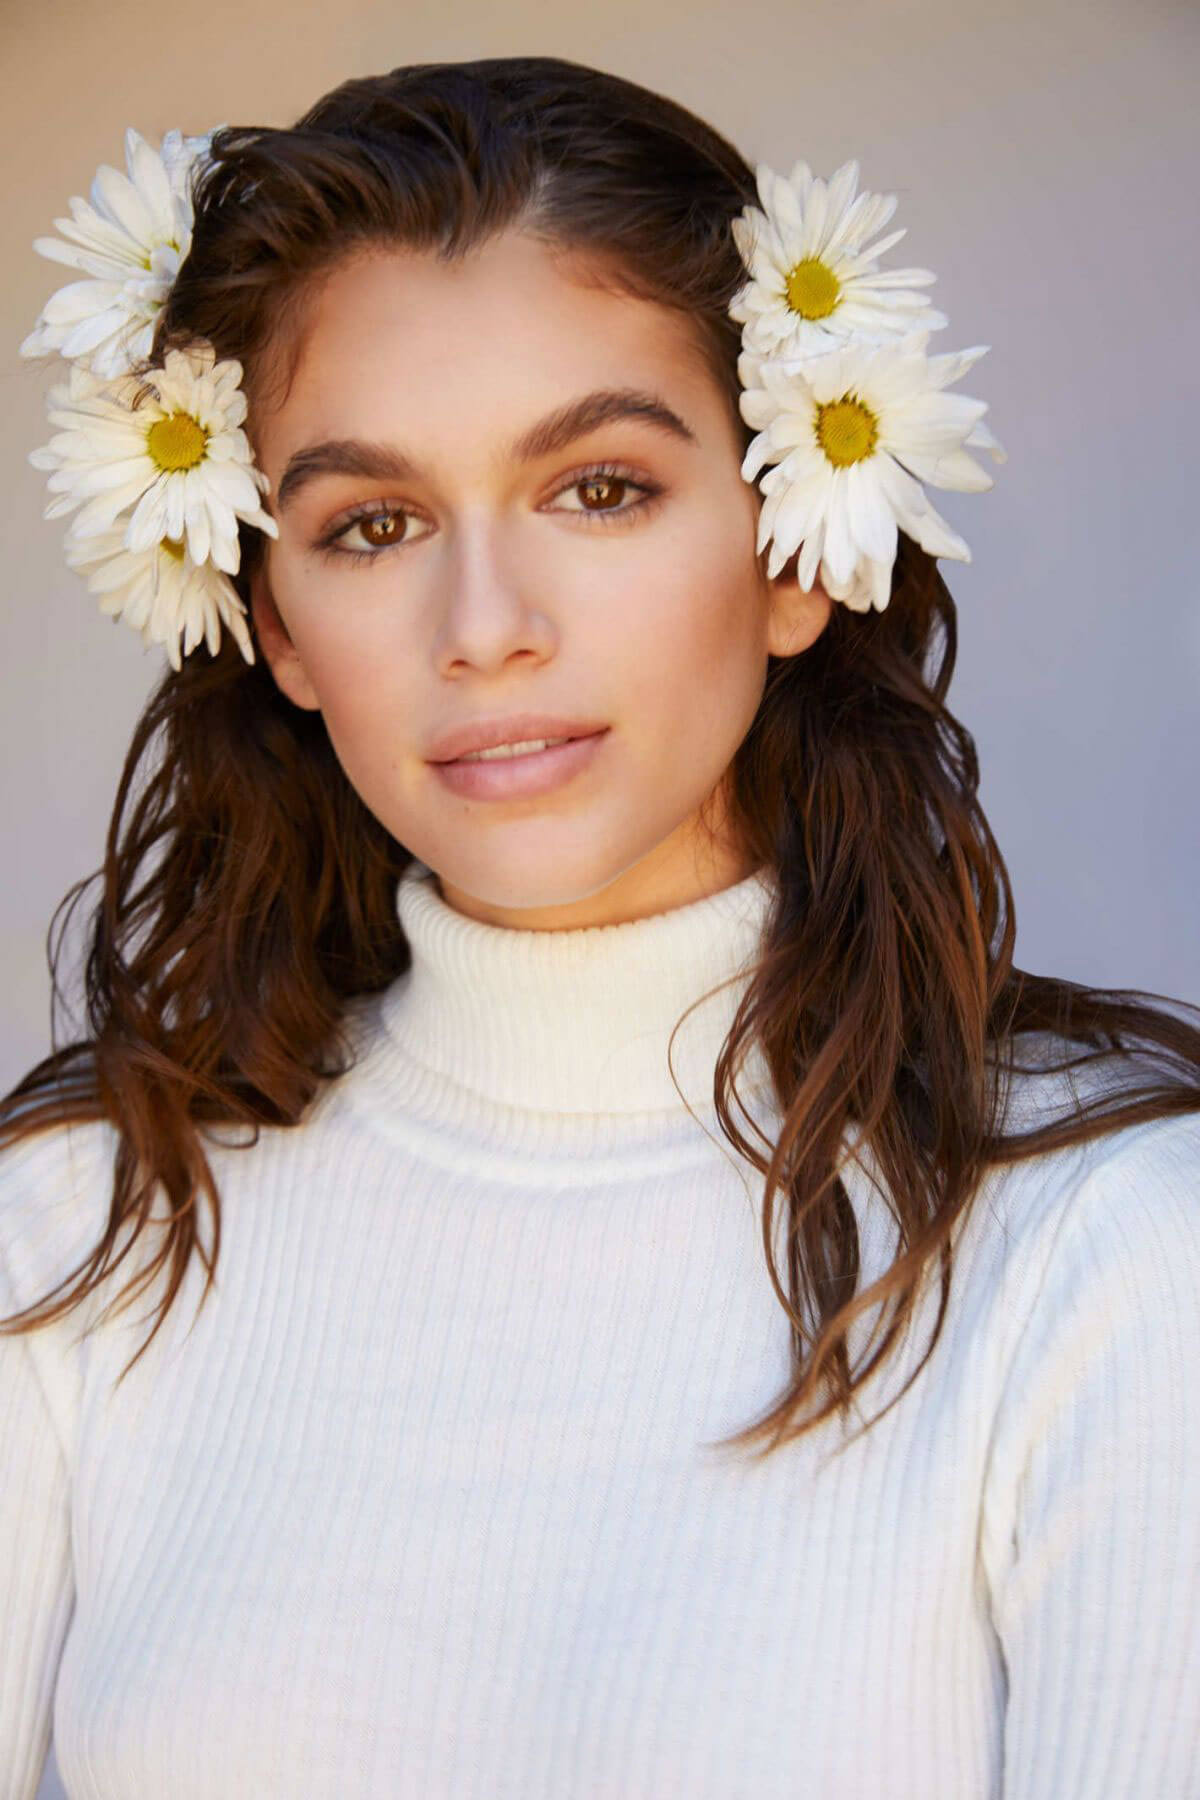 Kaia Gerber Poses for Marc Jacobs Daisy Love Fragrance, Spring 2018 Issue 3